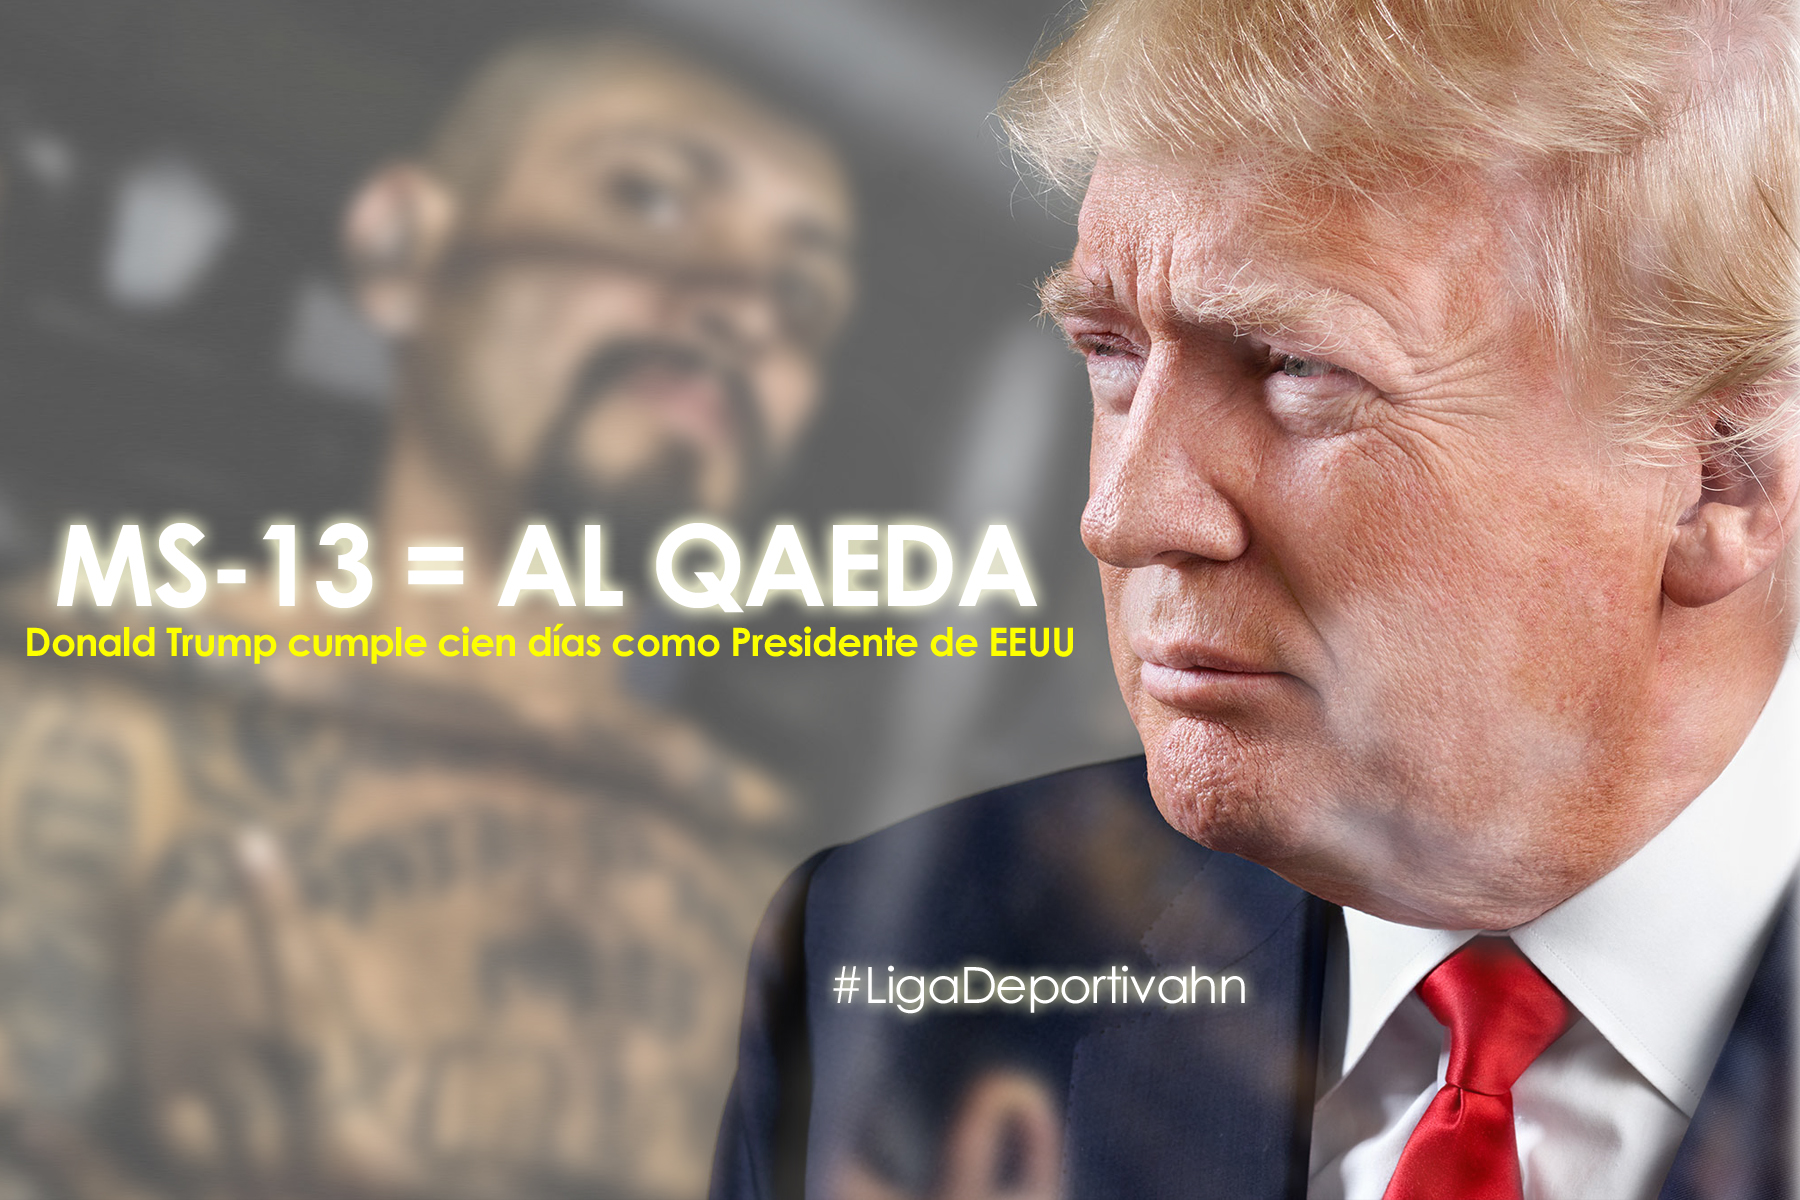 Donald Trump: Mara Salvatrucha = Al Qaeda